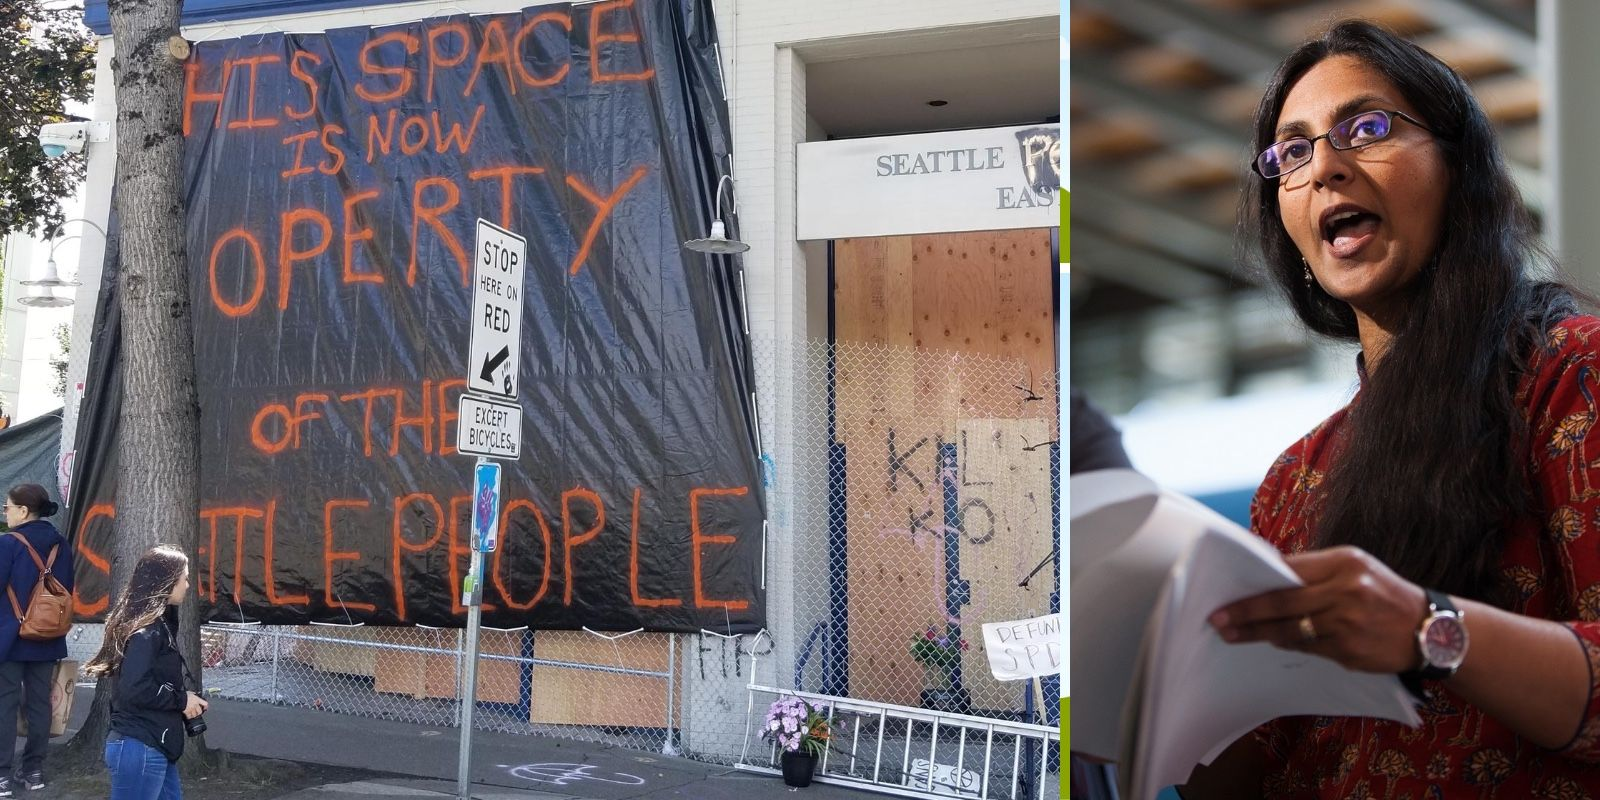 Seattle city council supported 'occupied zone' despite residents' persistent complaints